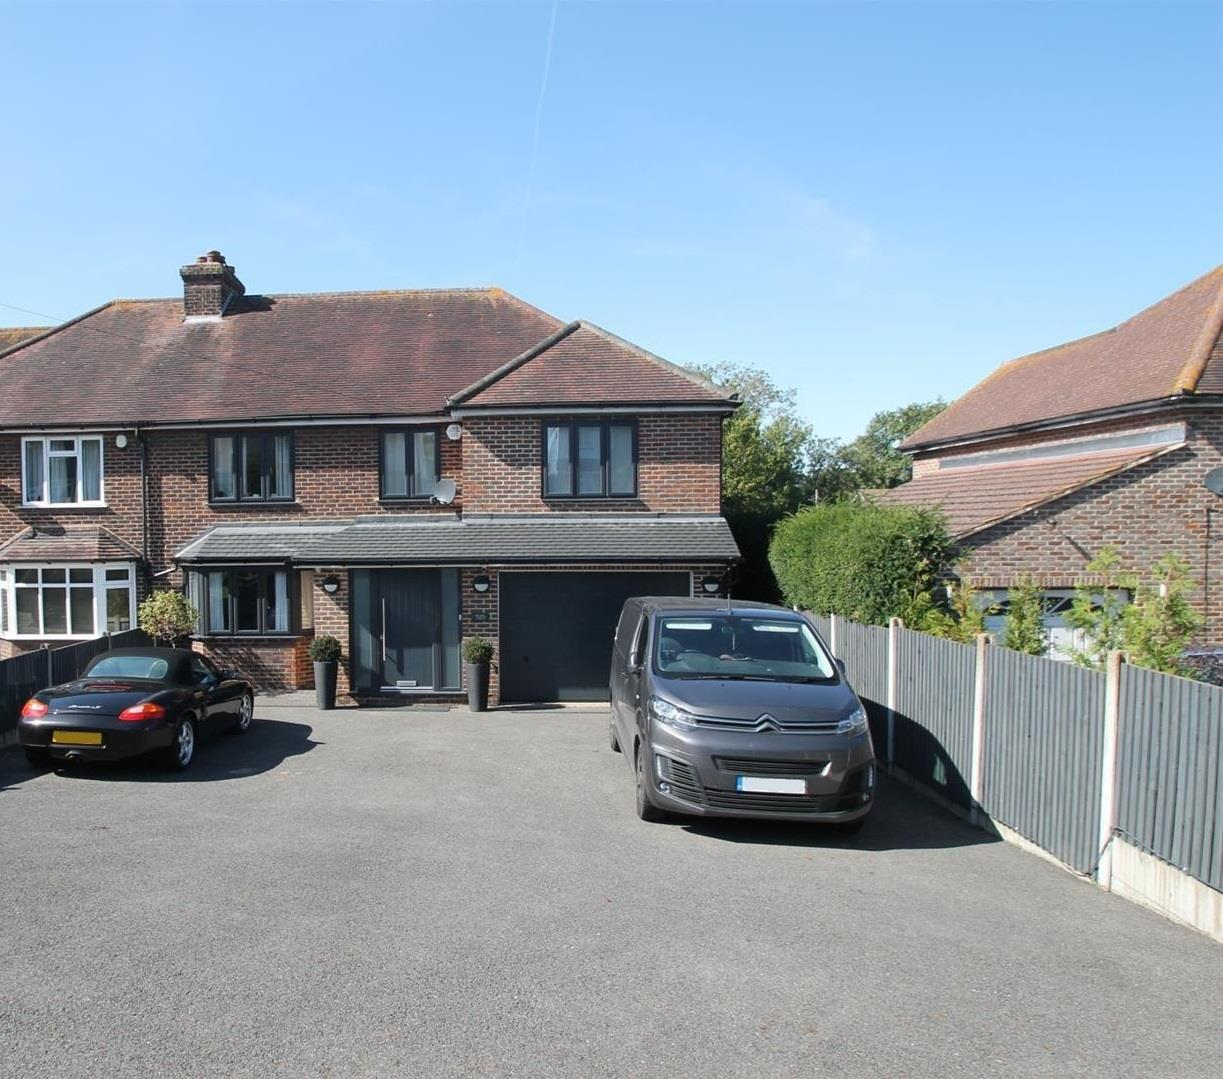 4 Bedroom House For Sale In Larkfield